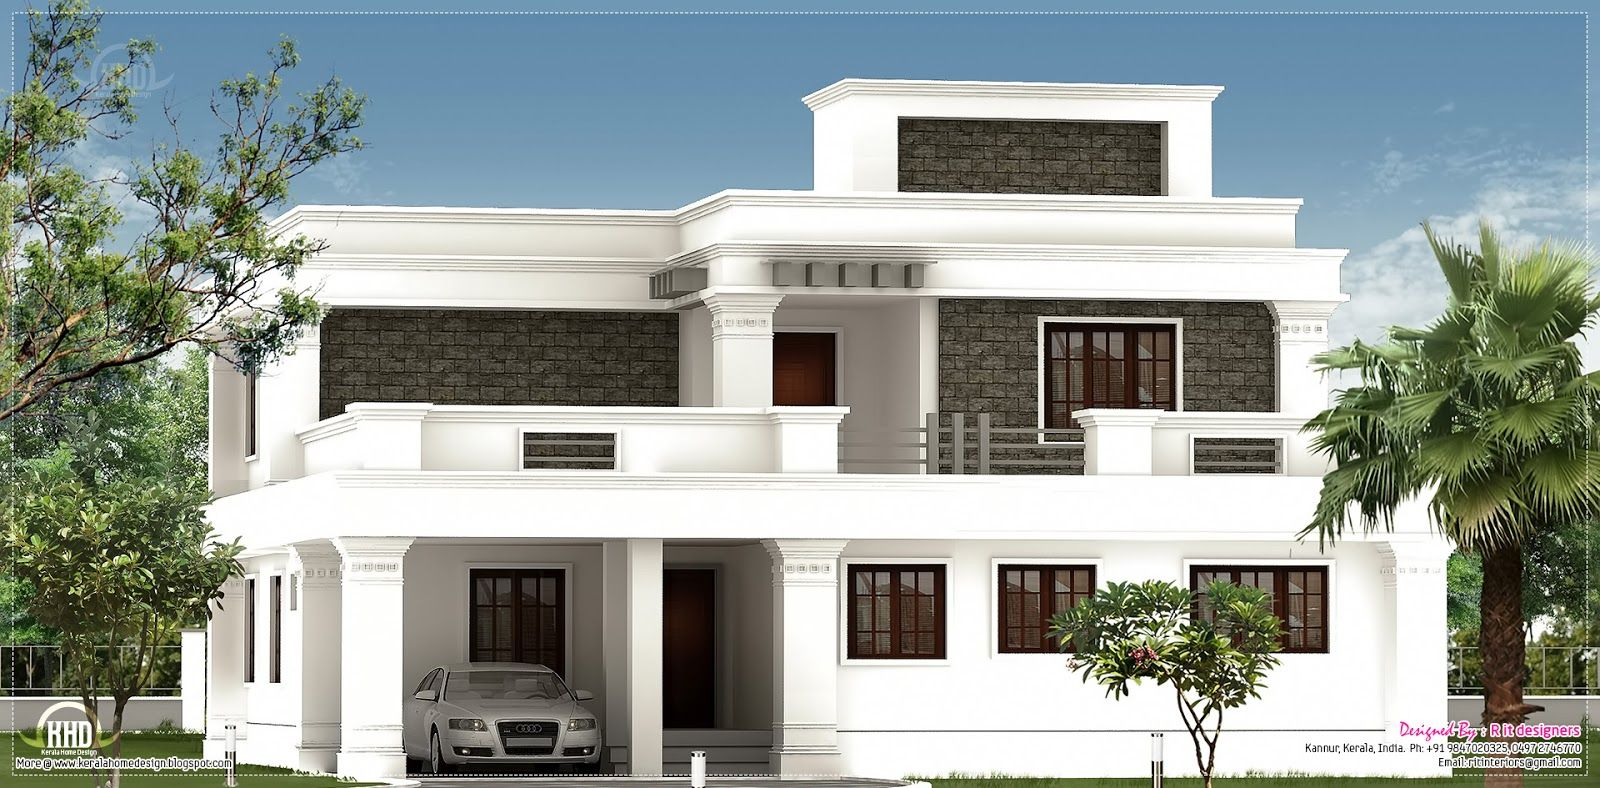 Flat roof homes designs flat roof villa exterior in 2400 for Flat roof bungalow designs